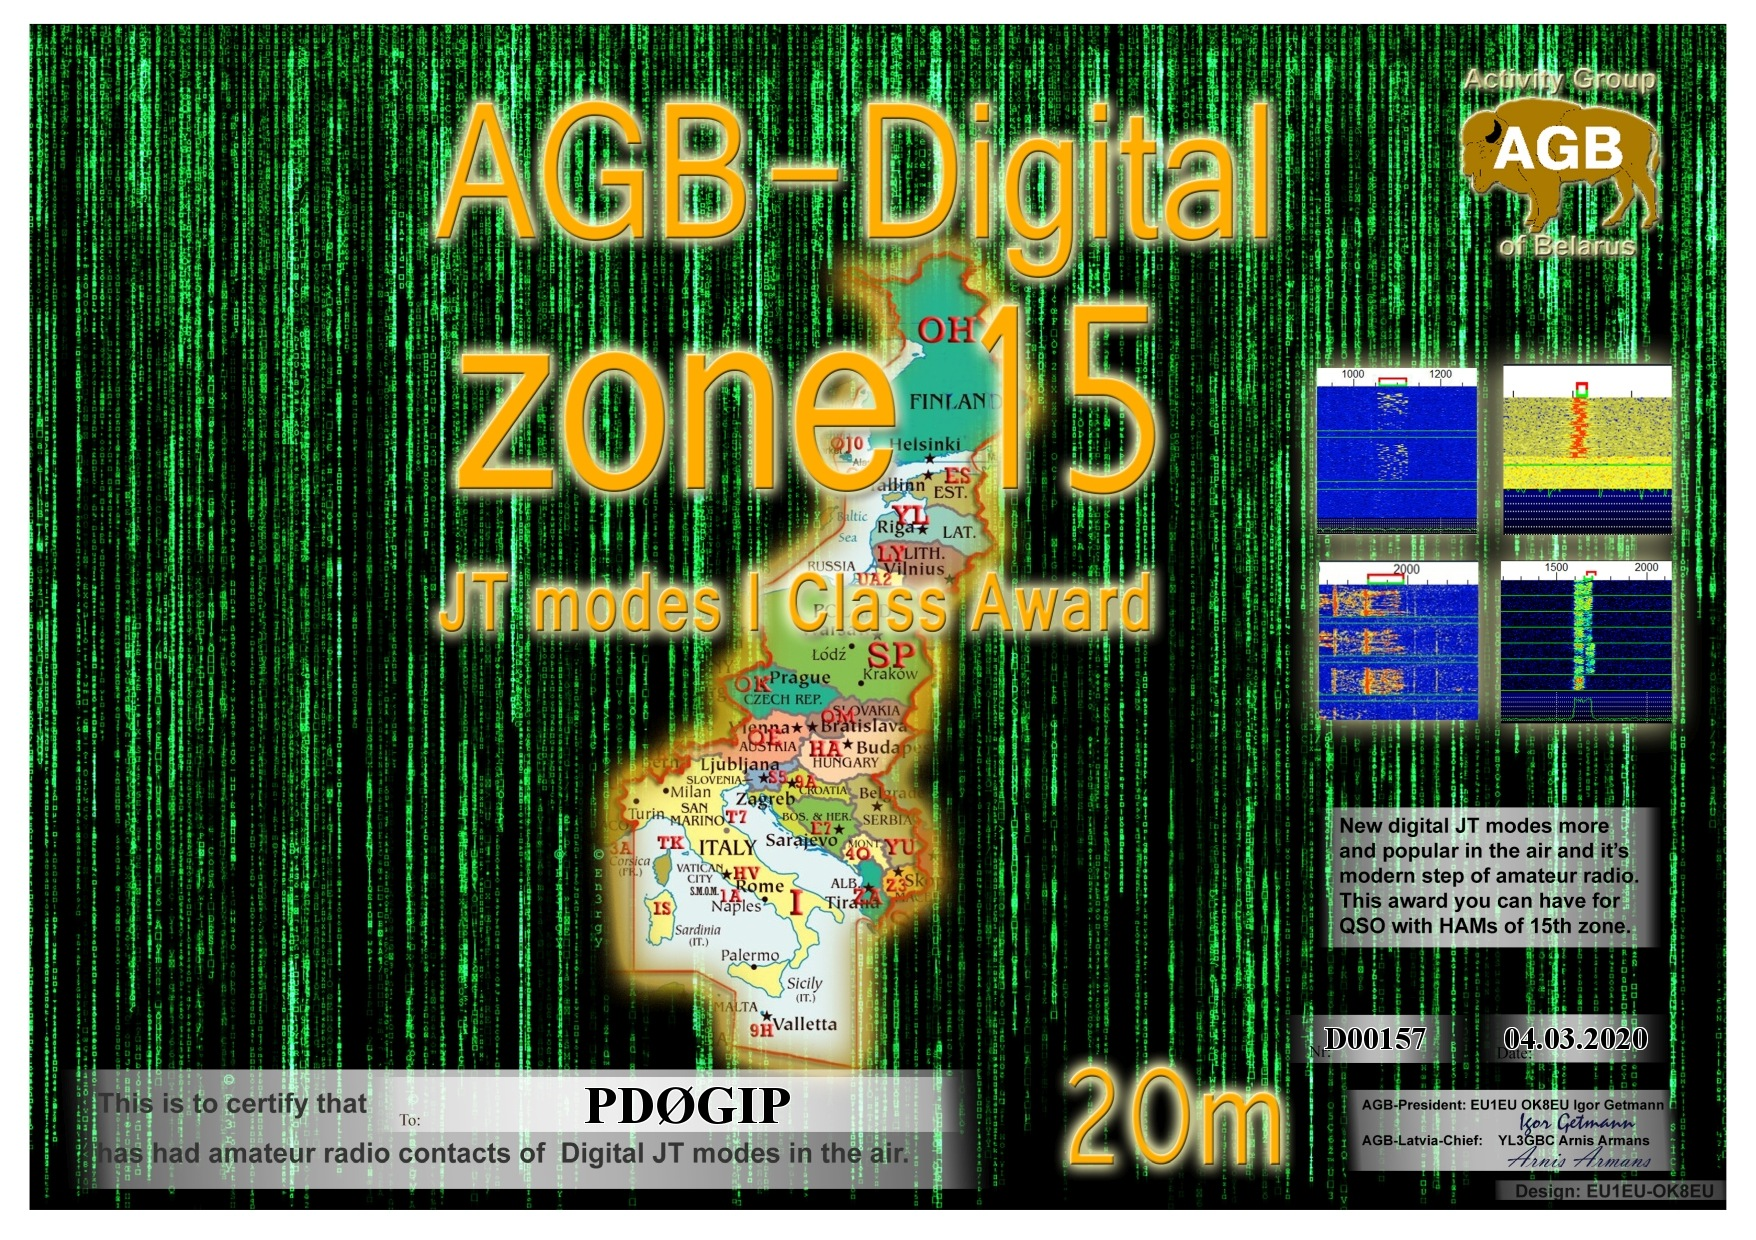 PD0GIP ZONE15 20M I AGB